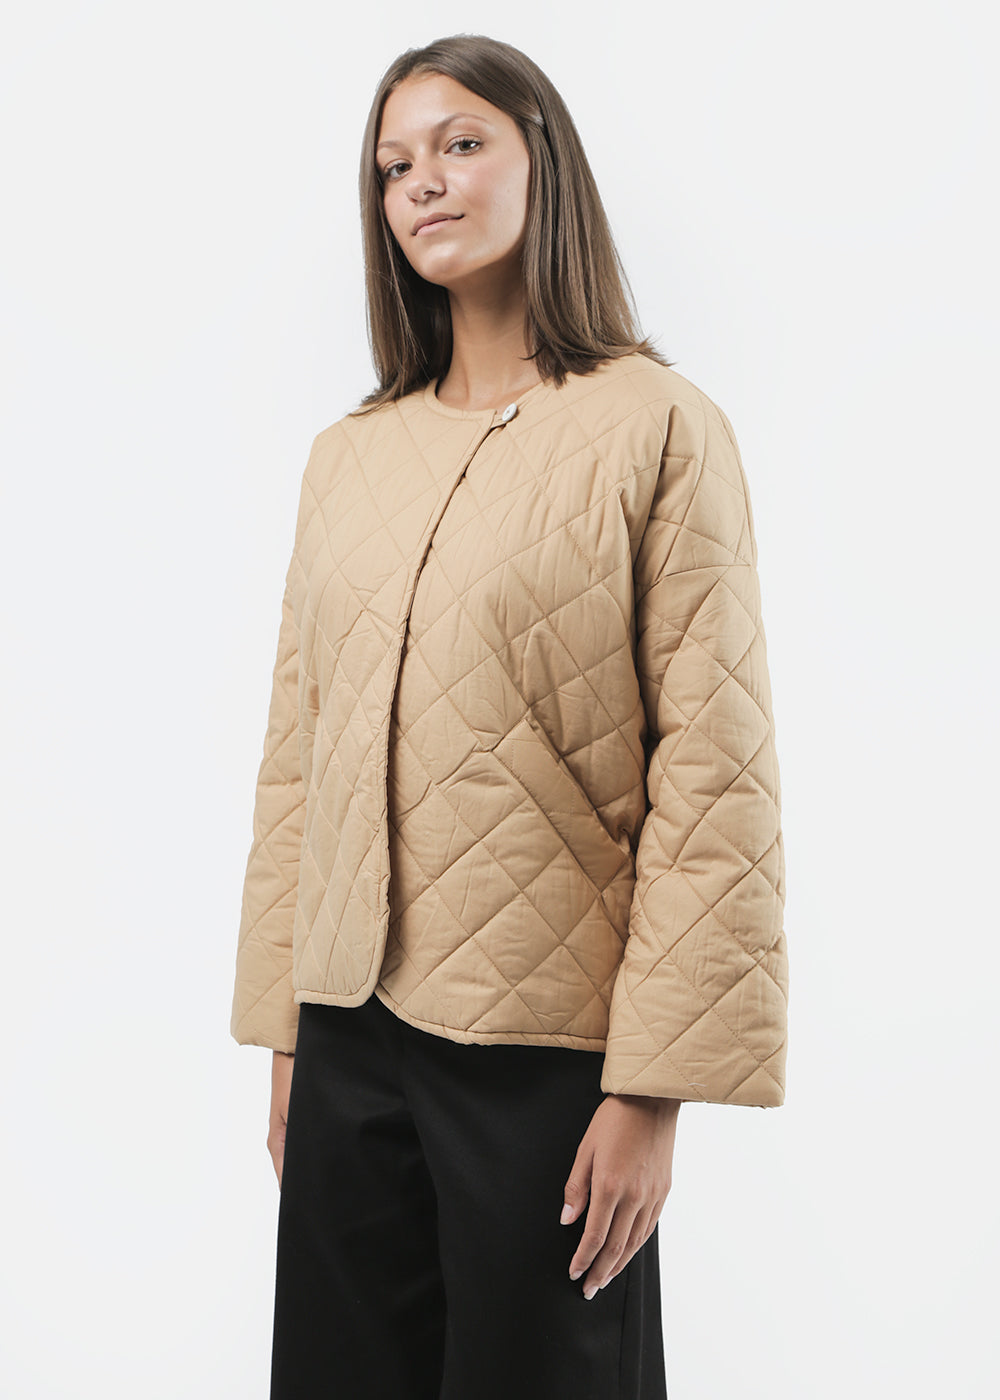 Kowtow Lovers Rock Jacket — New Classics Studios